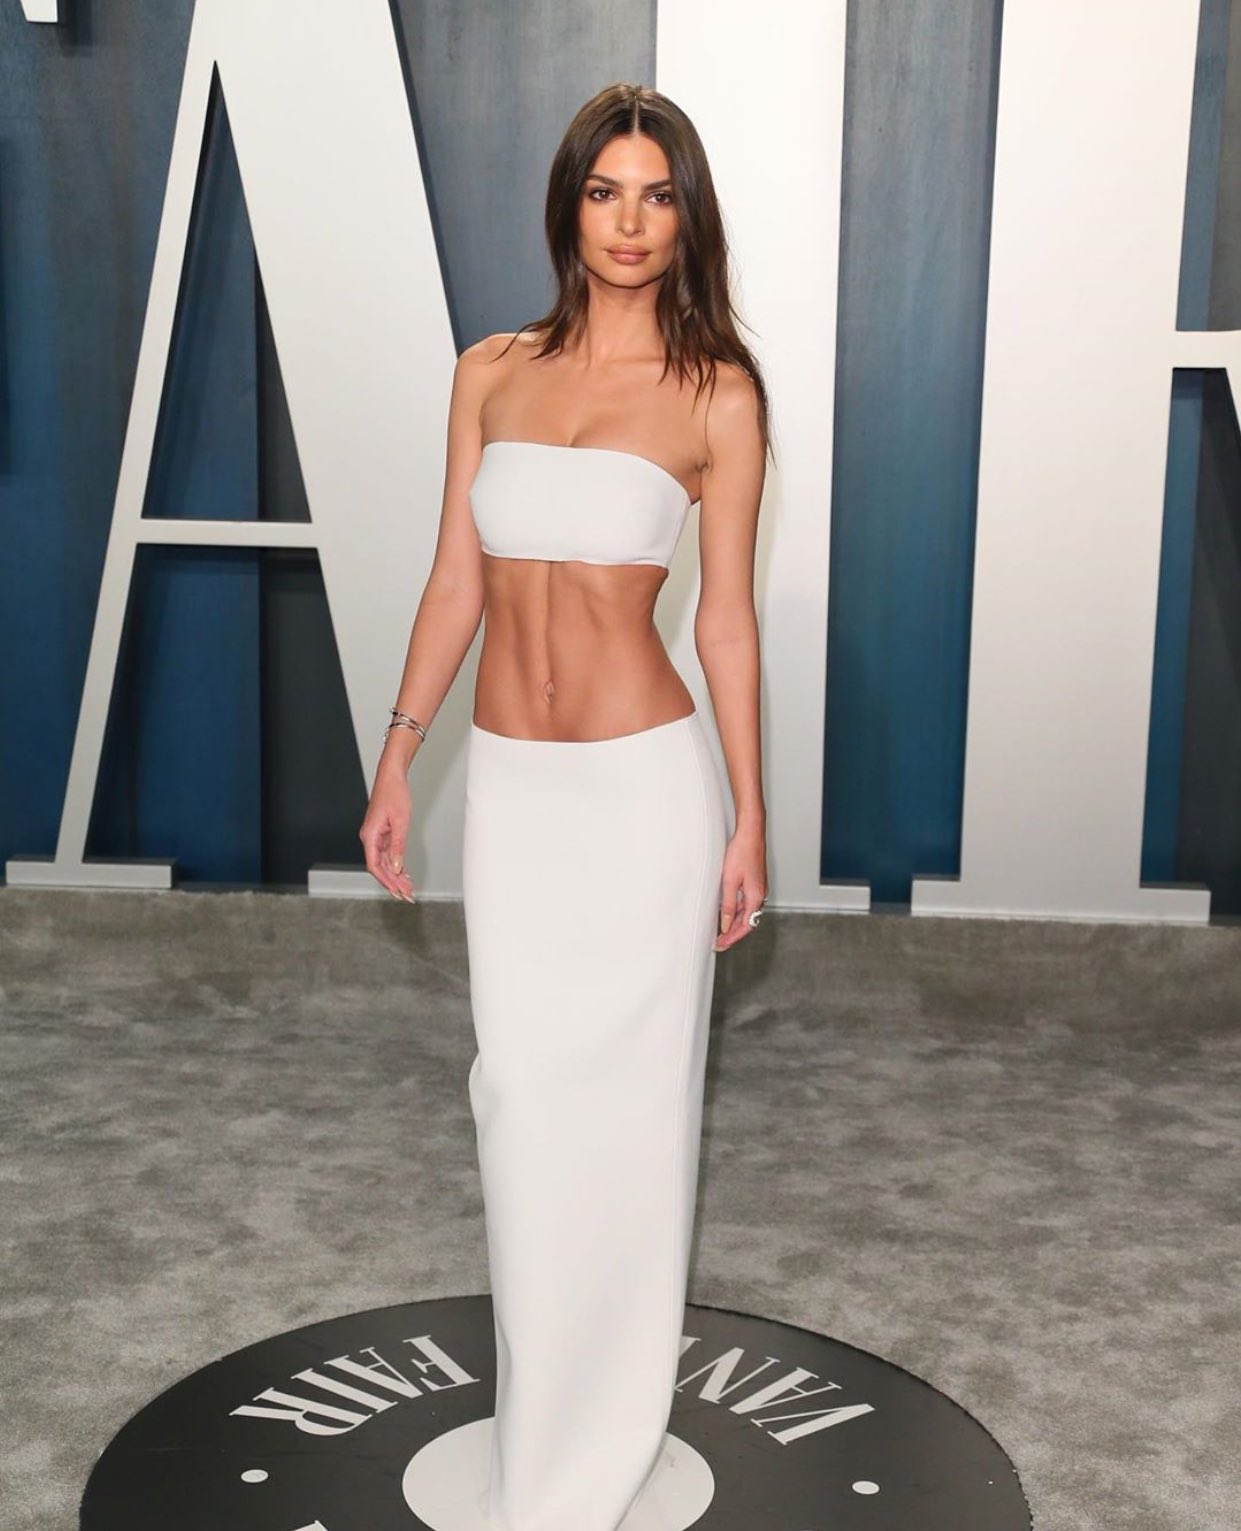 Emily Ratajkowski at the Vanity Fair Oscars Party